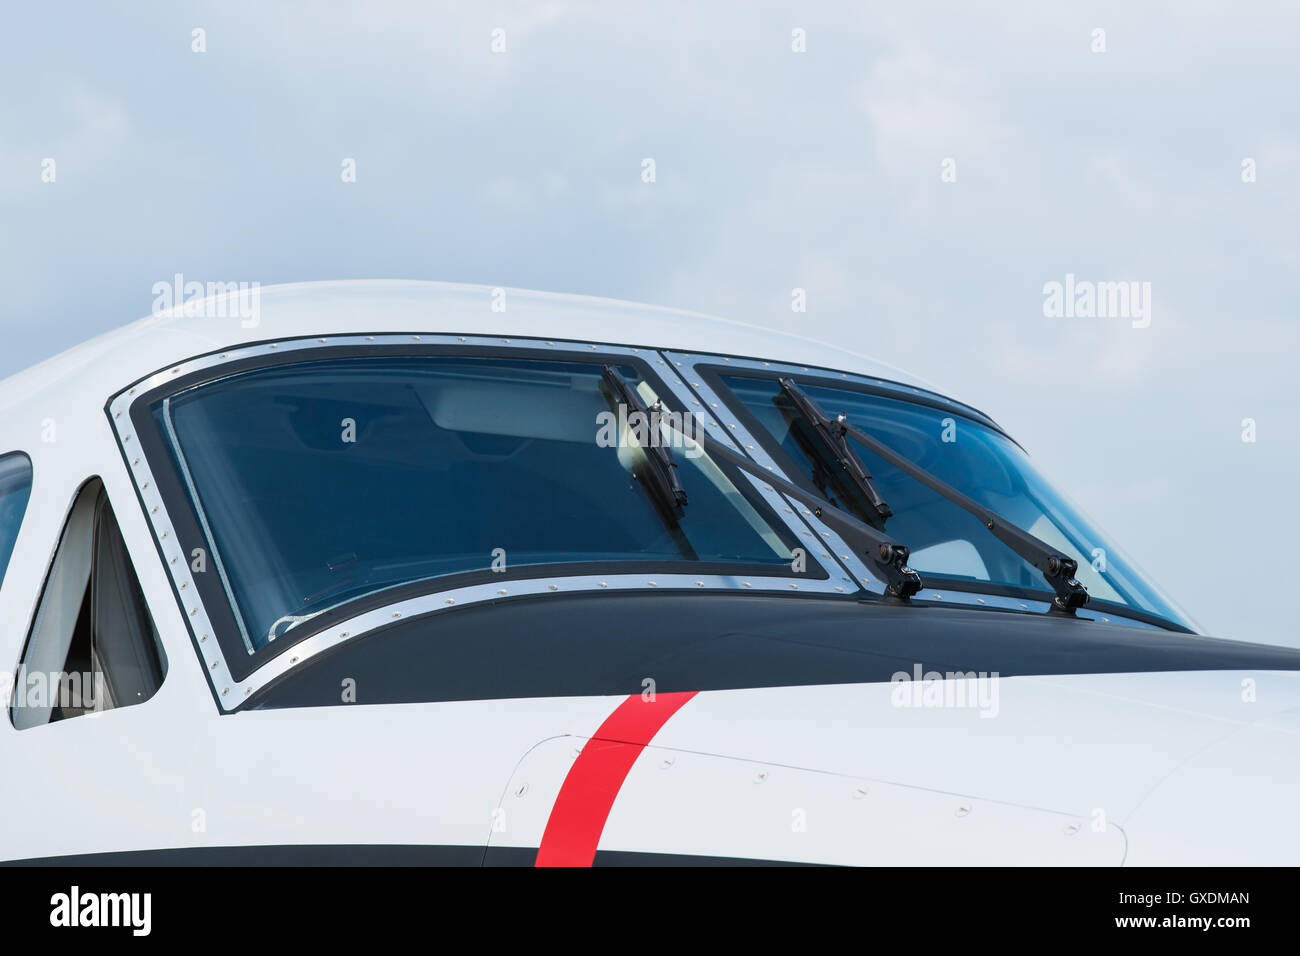 Stylish cockpit of a modern small aircraft. Windscreen and windshield wipers against the background of pale blue - Stock Image